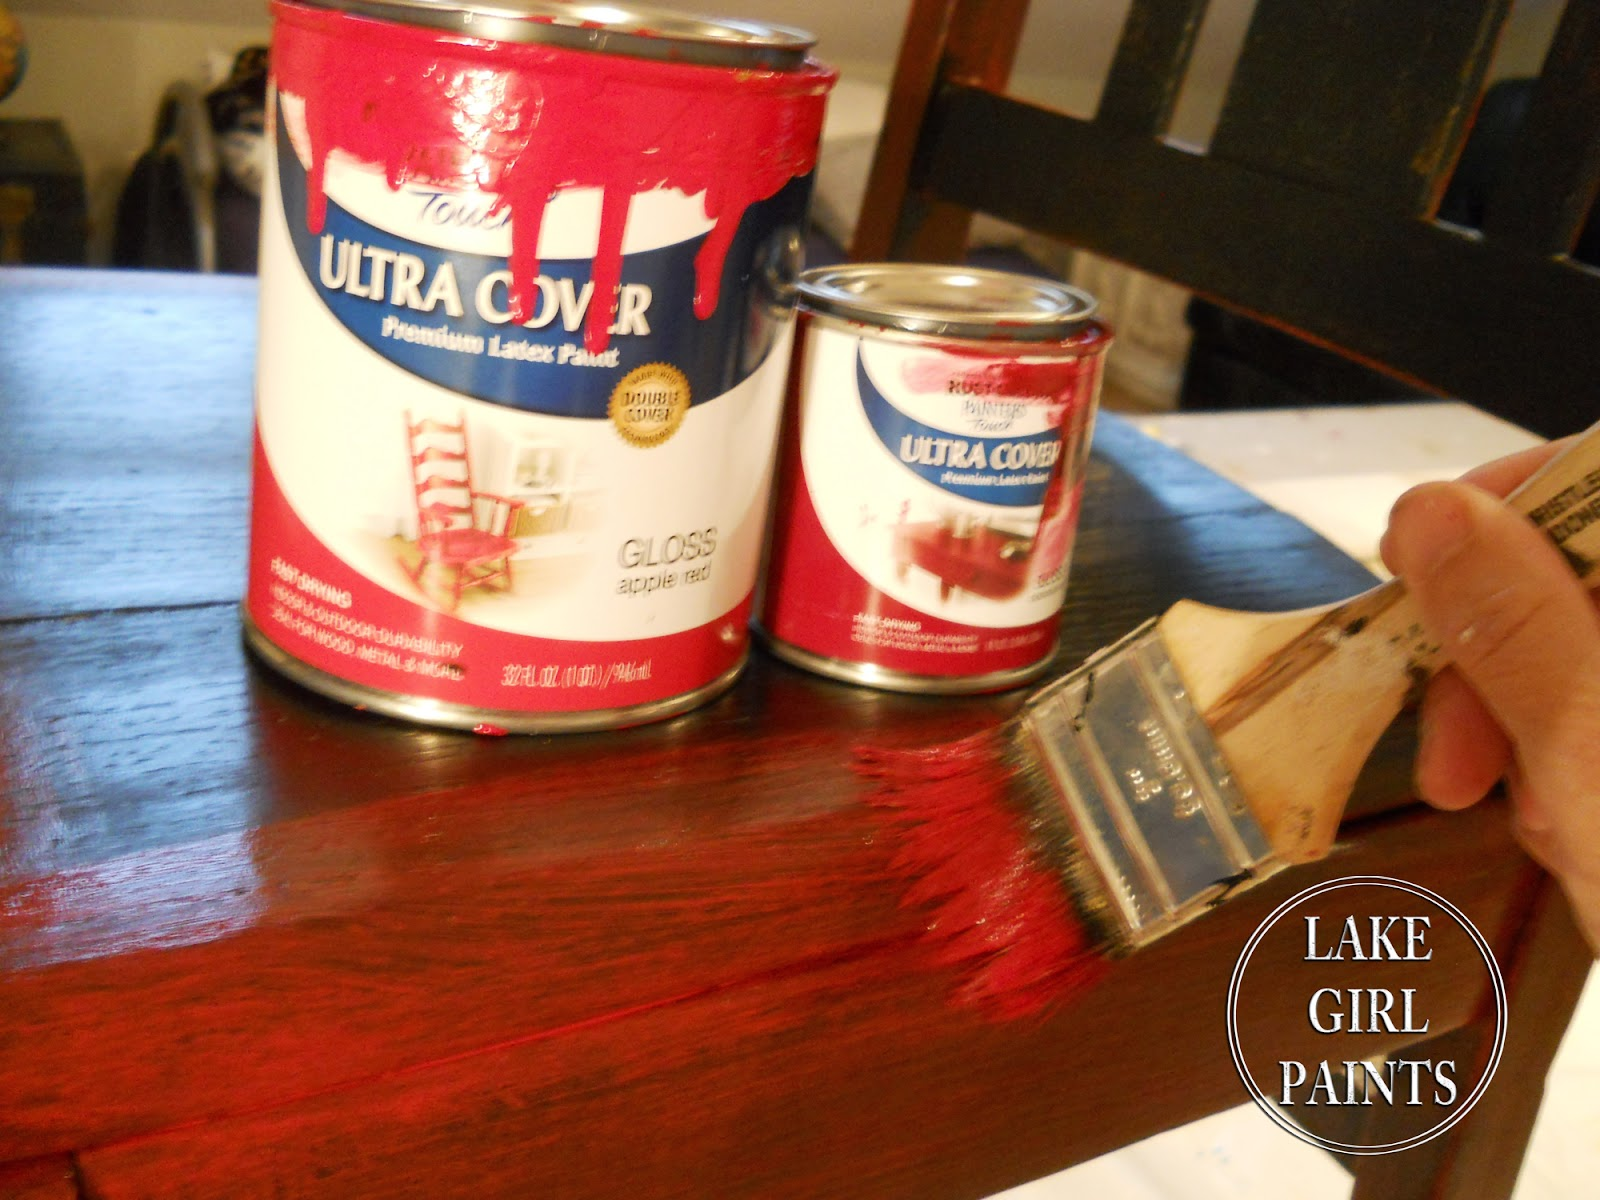 Pottery barn paint colors 2013 - My Pottery Barn Look On A Budget